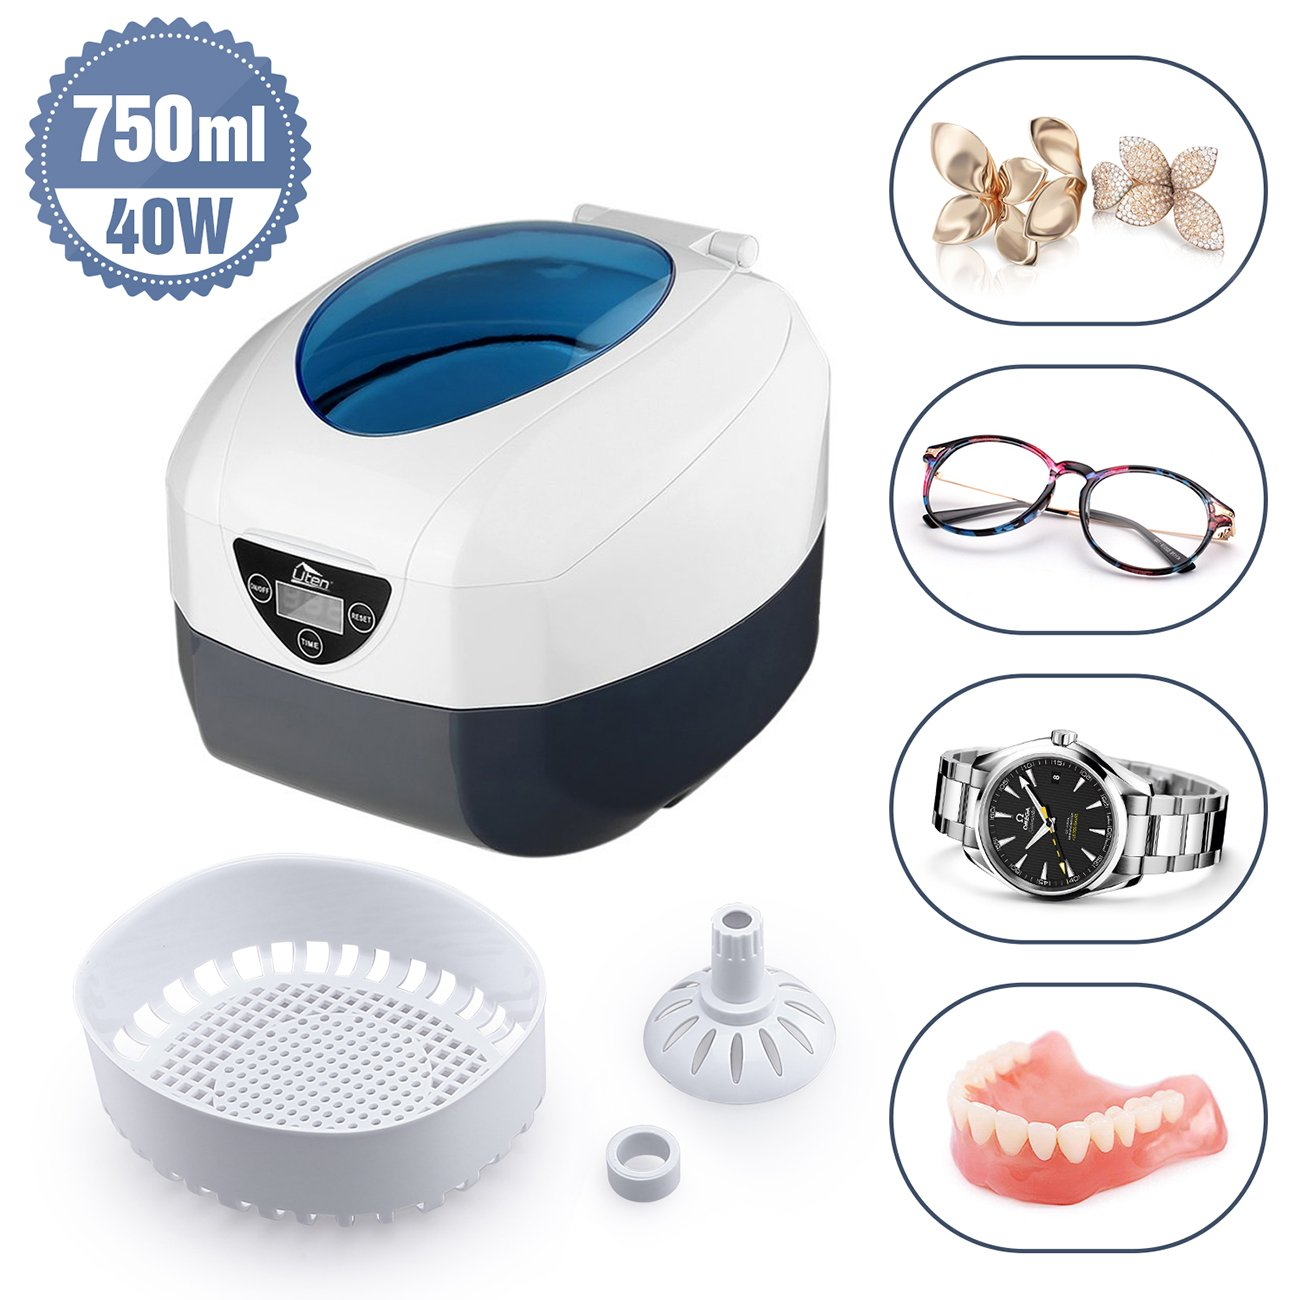 Ultrasonic Cleaner Low Noise Wash Machine for Cleaning Eyeglasses Jewelrys Watches Razors Dentures Combs Tools Instruments(750 ml)